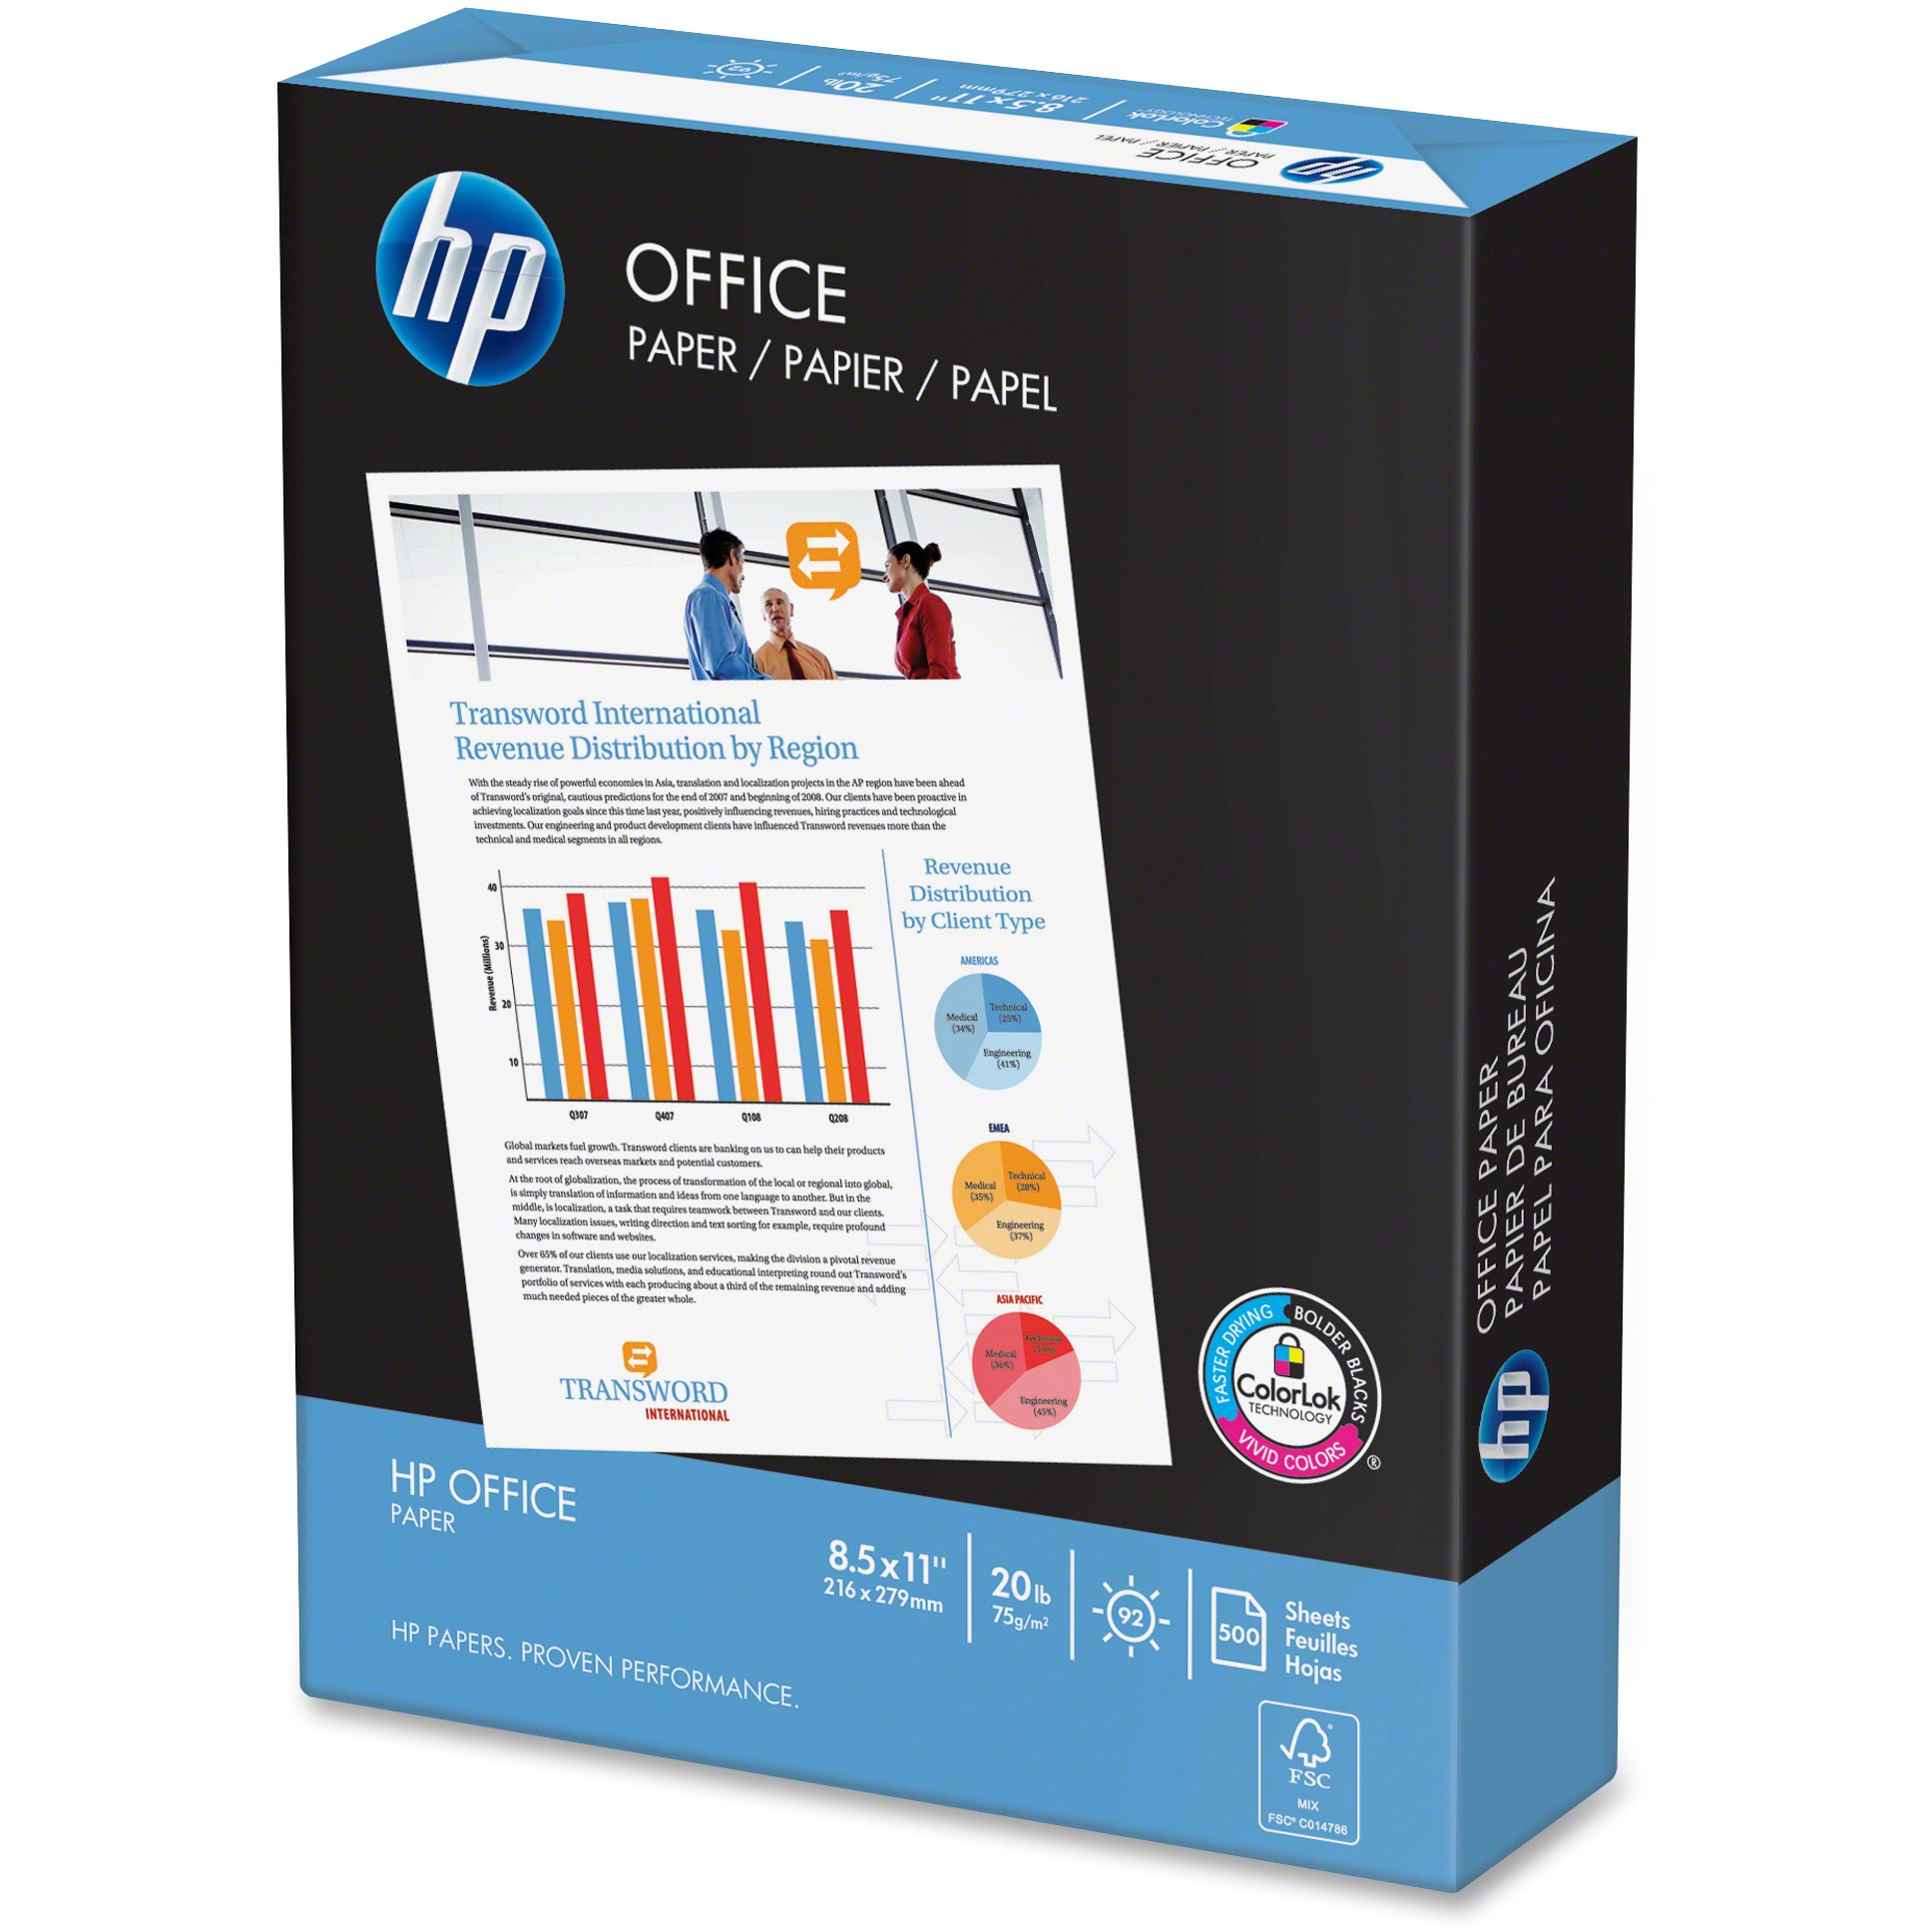 HP Office Paper 500 Count Ream